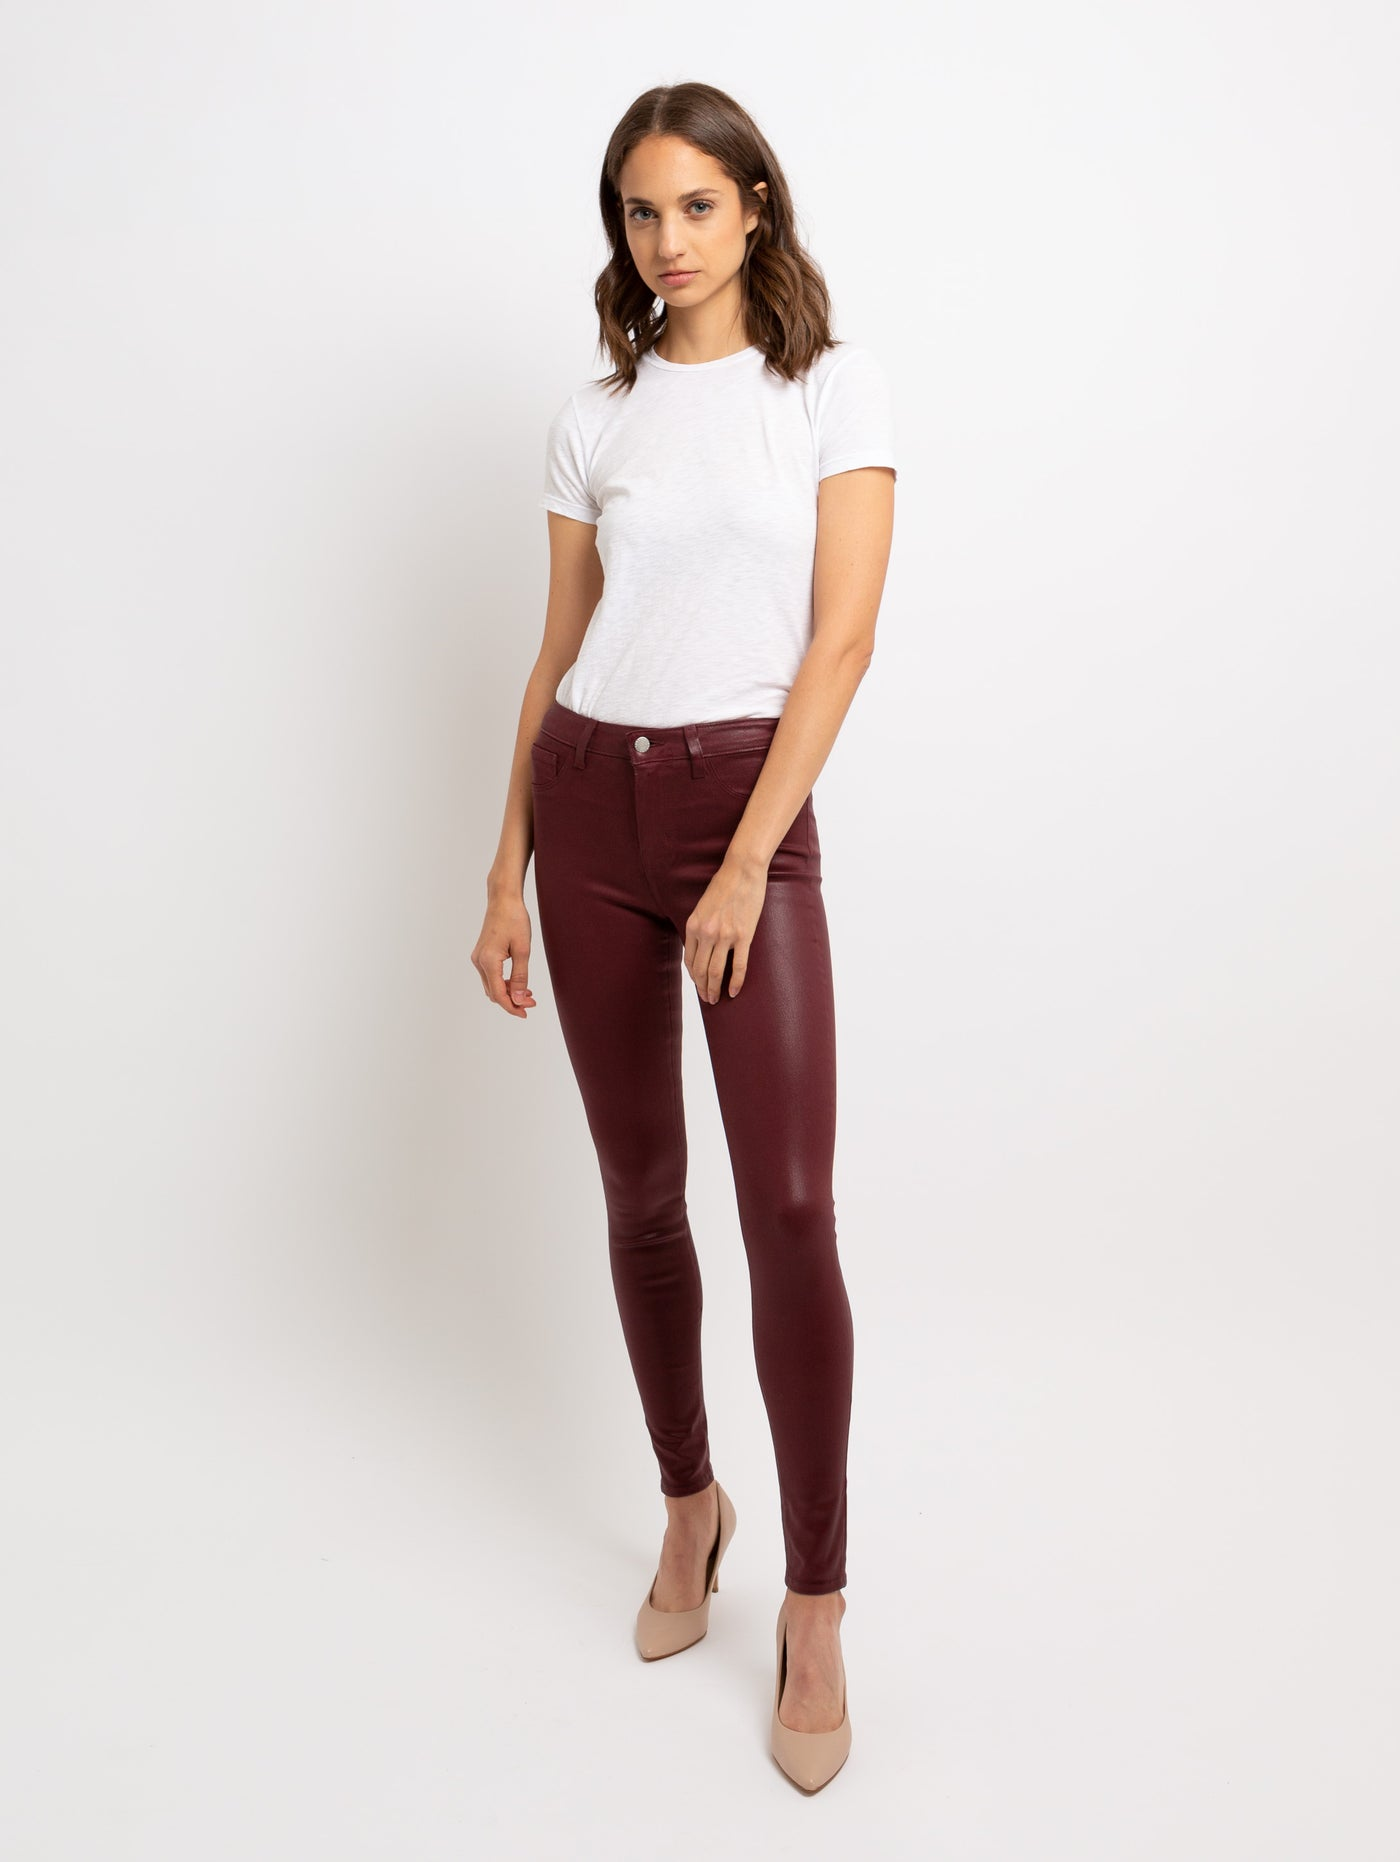 Marguerite High Rise Skinny Jean - Garnet Coated-LAGENCE-Over the Rainbow